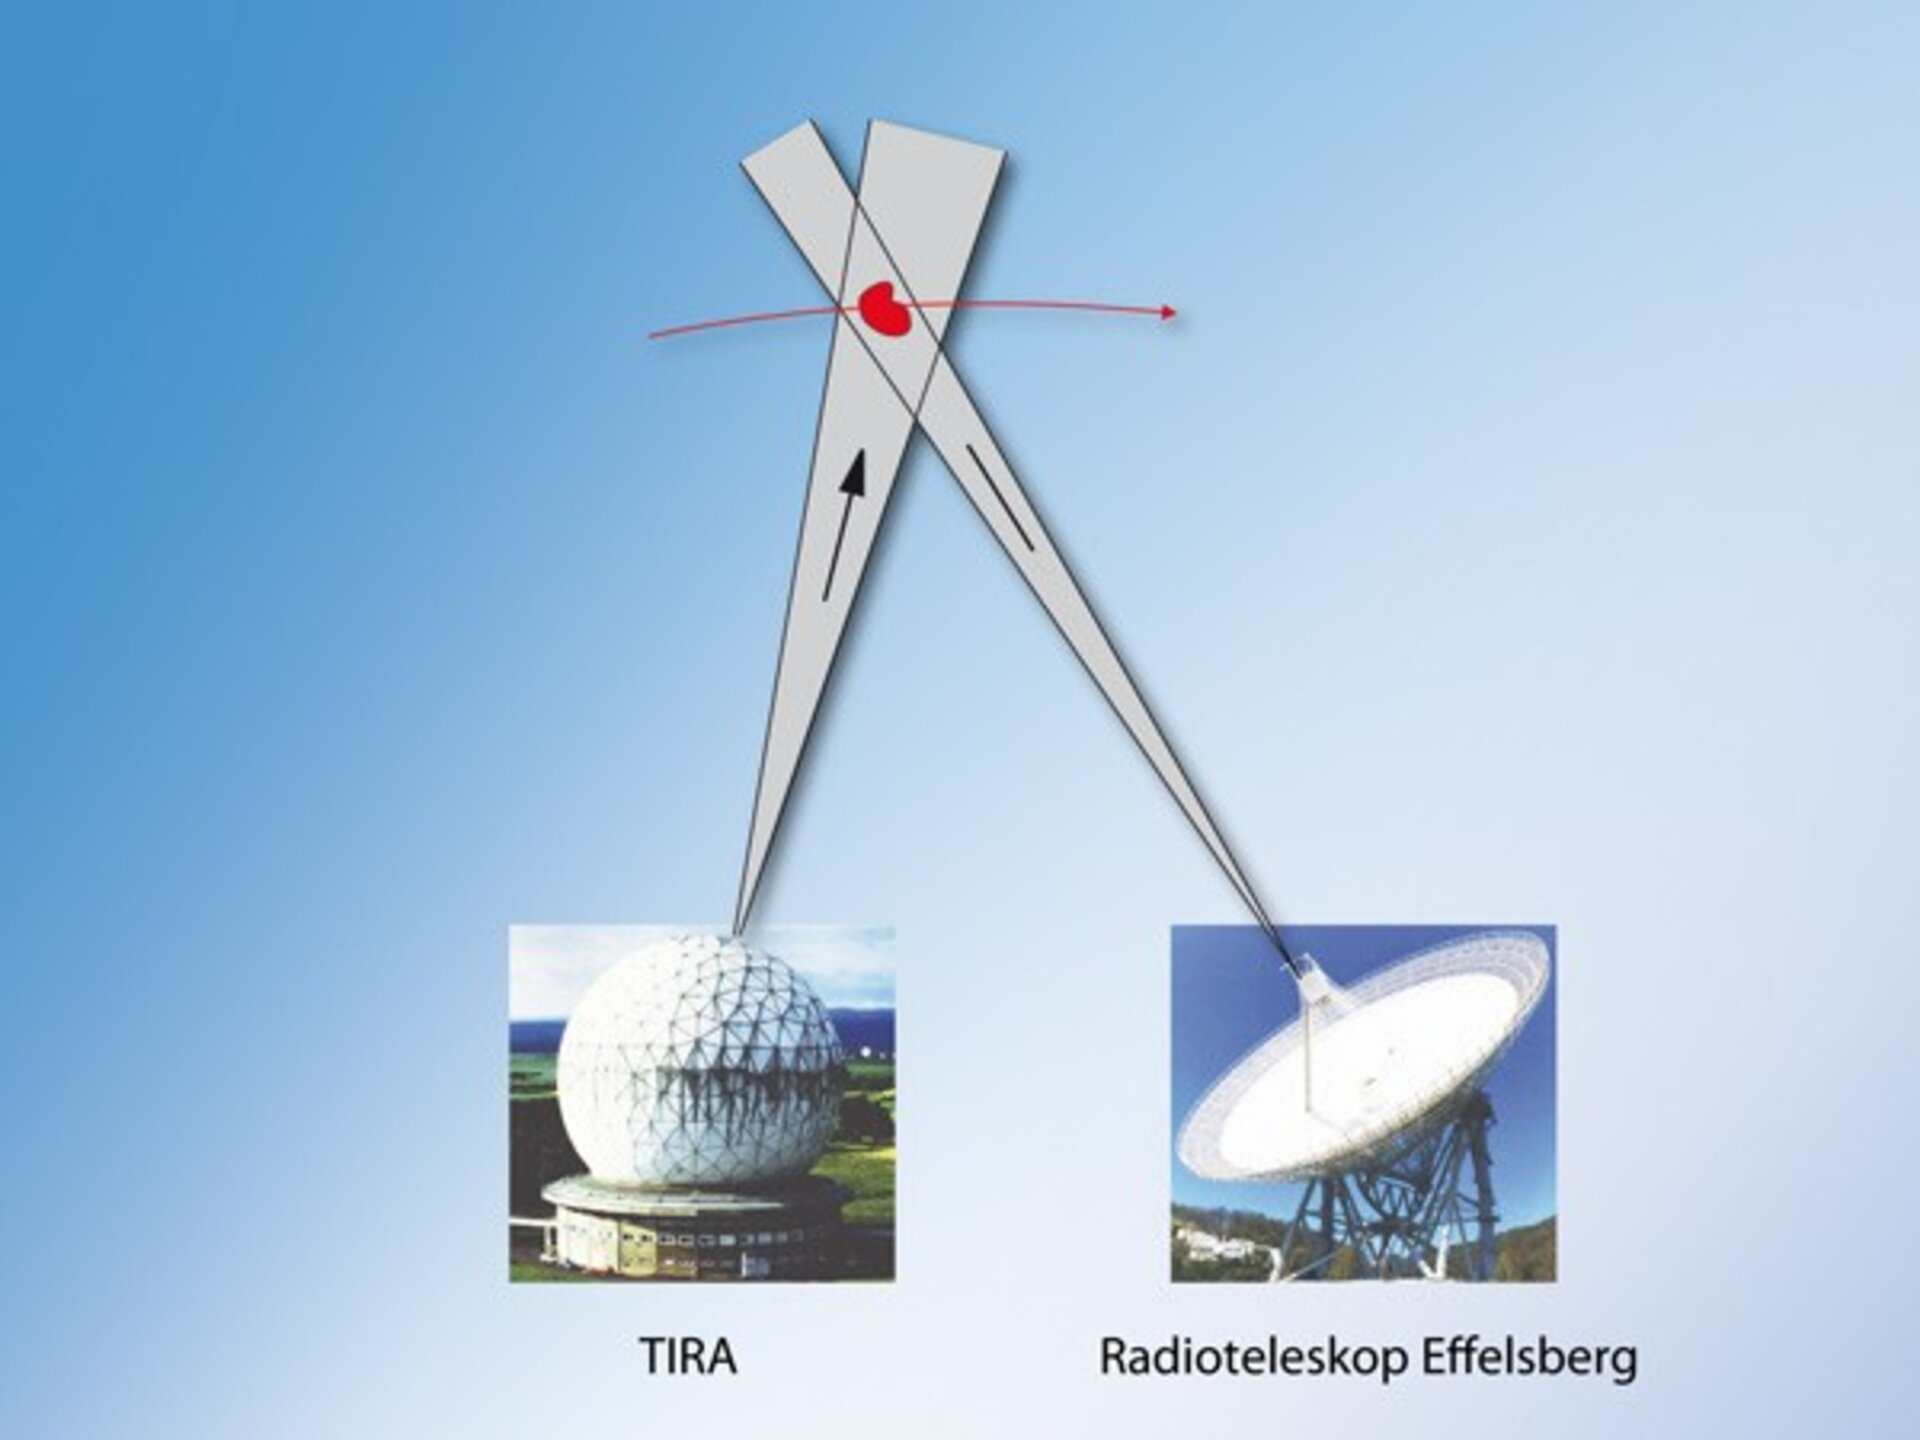 Bi-static radar scanning